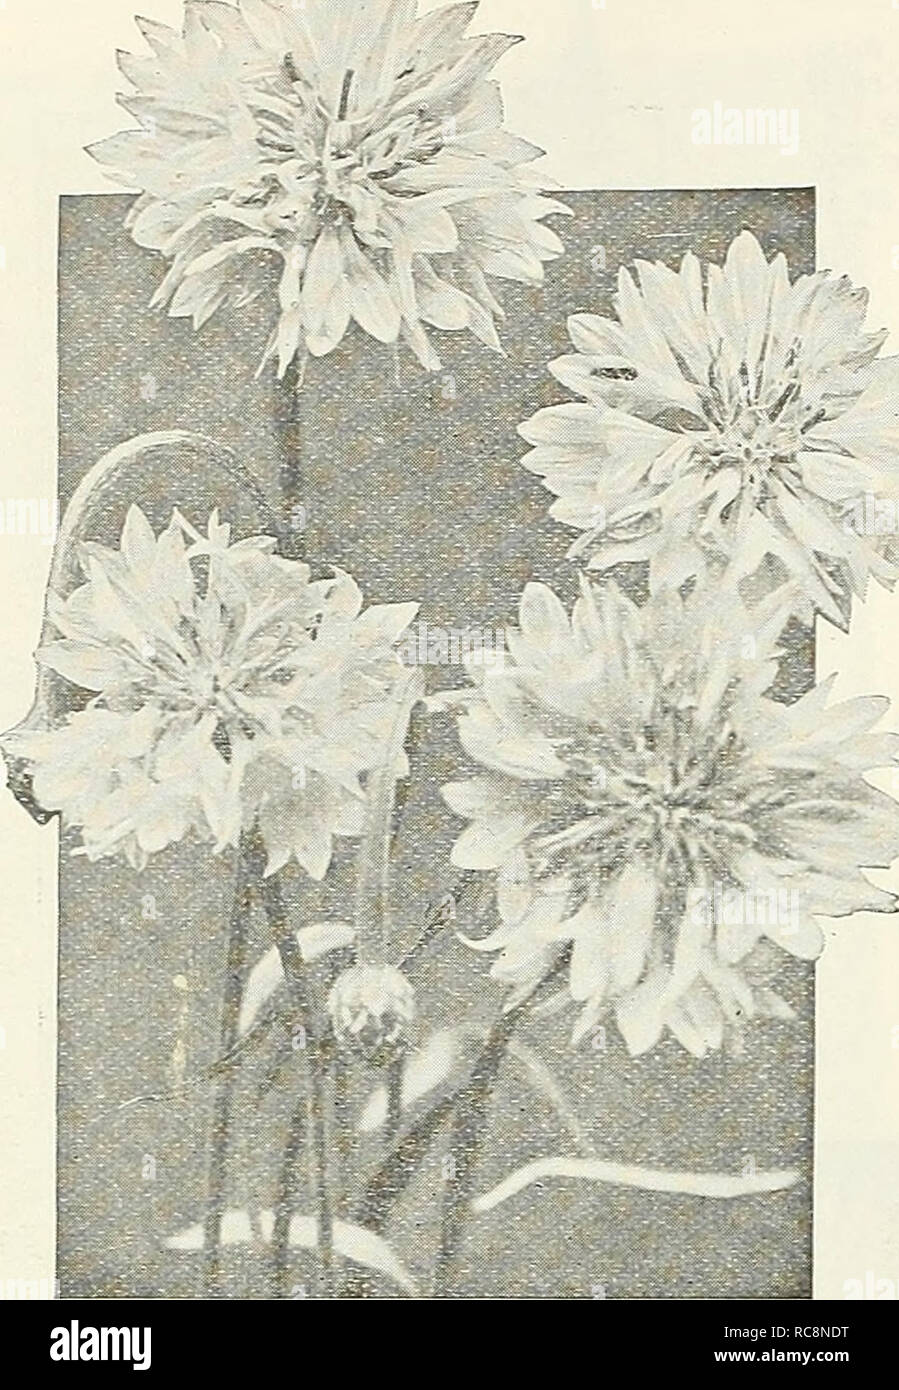 . Dreer's garden book 1926. Seeds Catalogs; Nursery stock Catalogs; Gardening Equipment and supplies Catalogs; Flowers Seeds Catalogs; Vegetables Seeds Catalogs; Fruit Seeds Catalogs. 78 /flEWyAJREE^ RELIABLE FLOWER SEEDS >HlMllEIiPM%. D..' I 11, r I M a ',L  (. Y .xus (Cornflower) Centaurea Imperialis (Royal Sweet Sultans) This beautiful class is undoubtedly the finest of all Sweet Sultans for cut-flower purposes. The charming, sweet-scented, artistic- shaped flowers are borne on long, strong stems and when cut will stand for several days in good condition. It is best, in this latitude, t Stock Photo